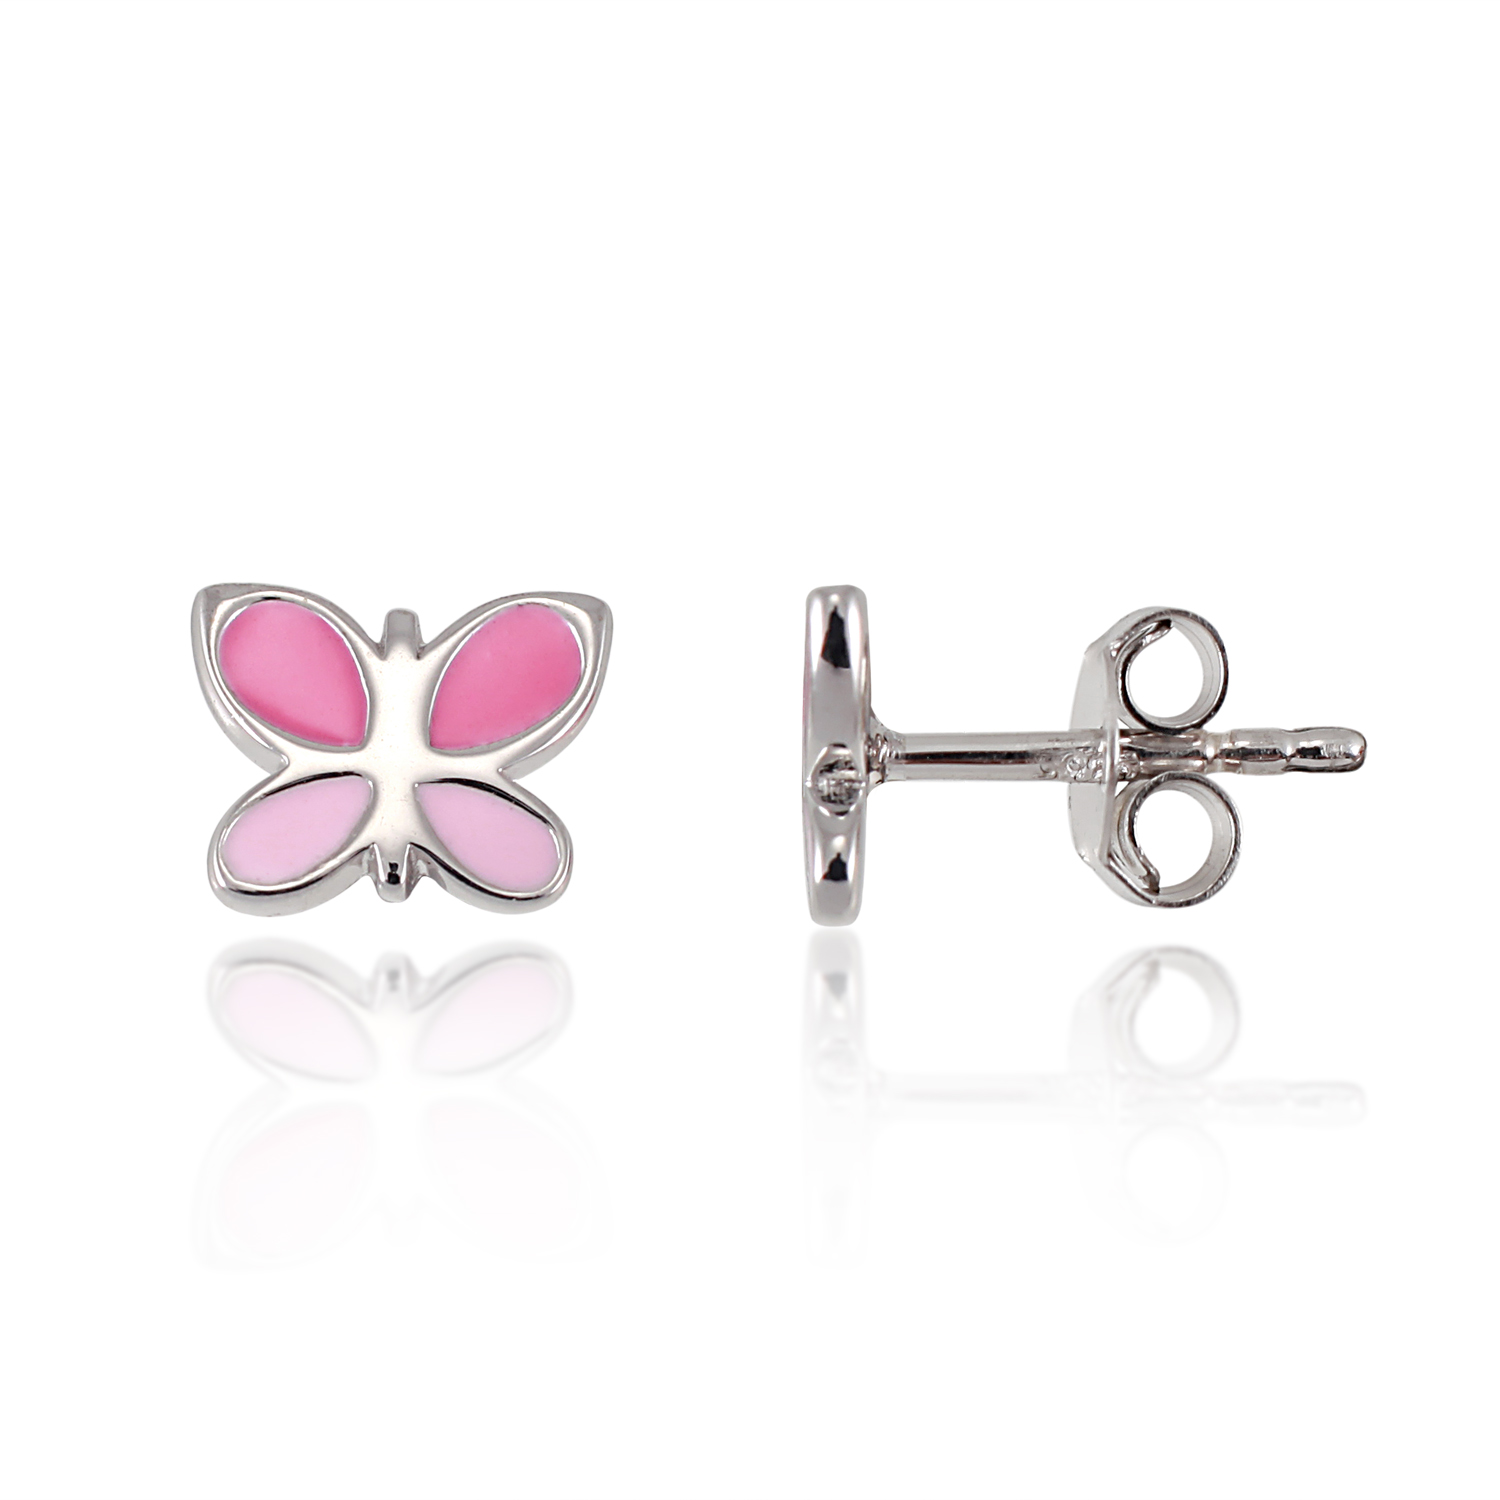 Children's 925 Sterling Silver Tiny Pink Butterfly 7 mm Post Stud Earrings